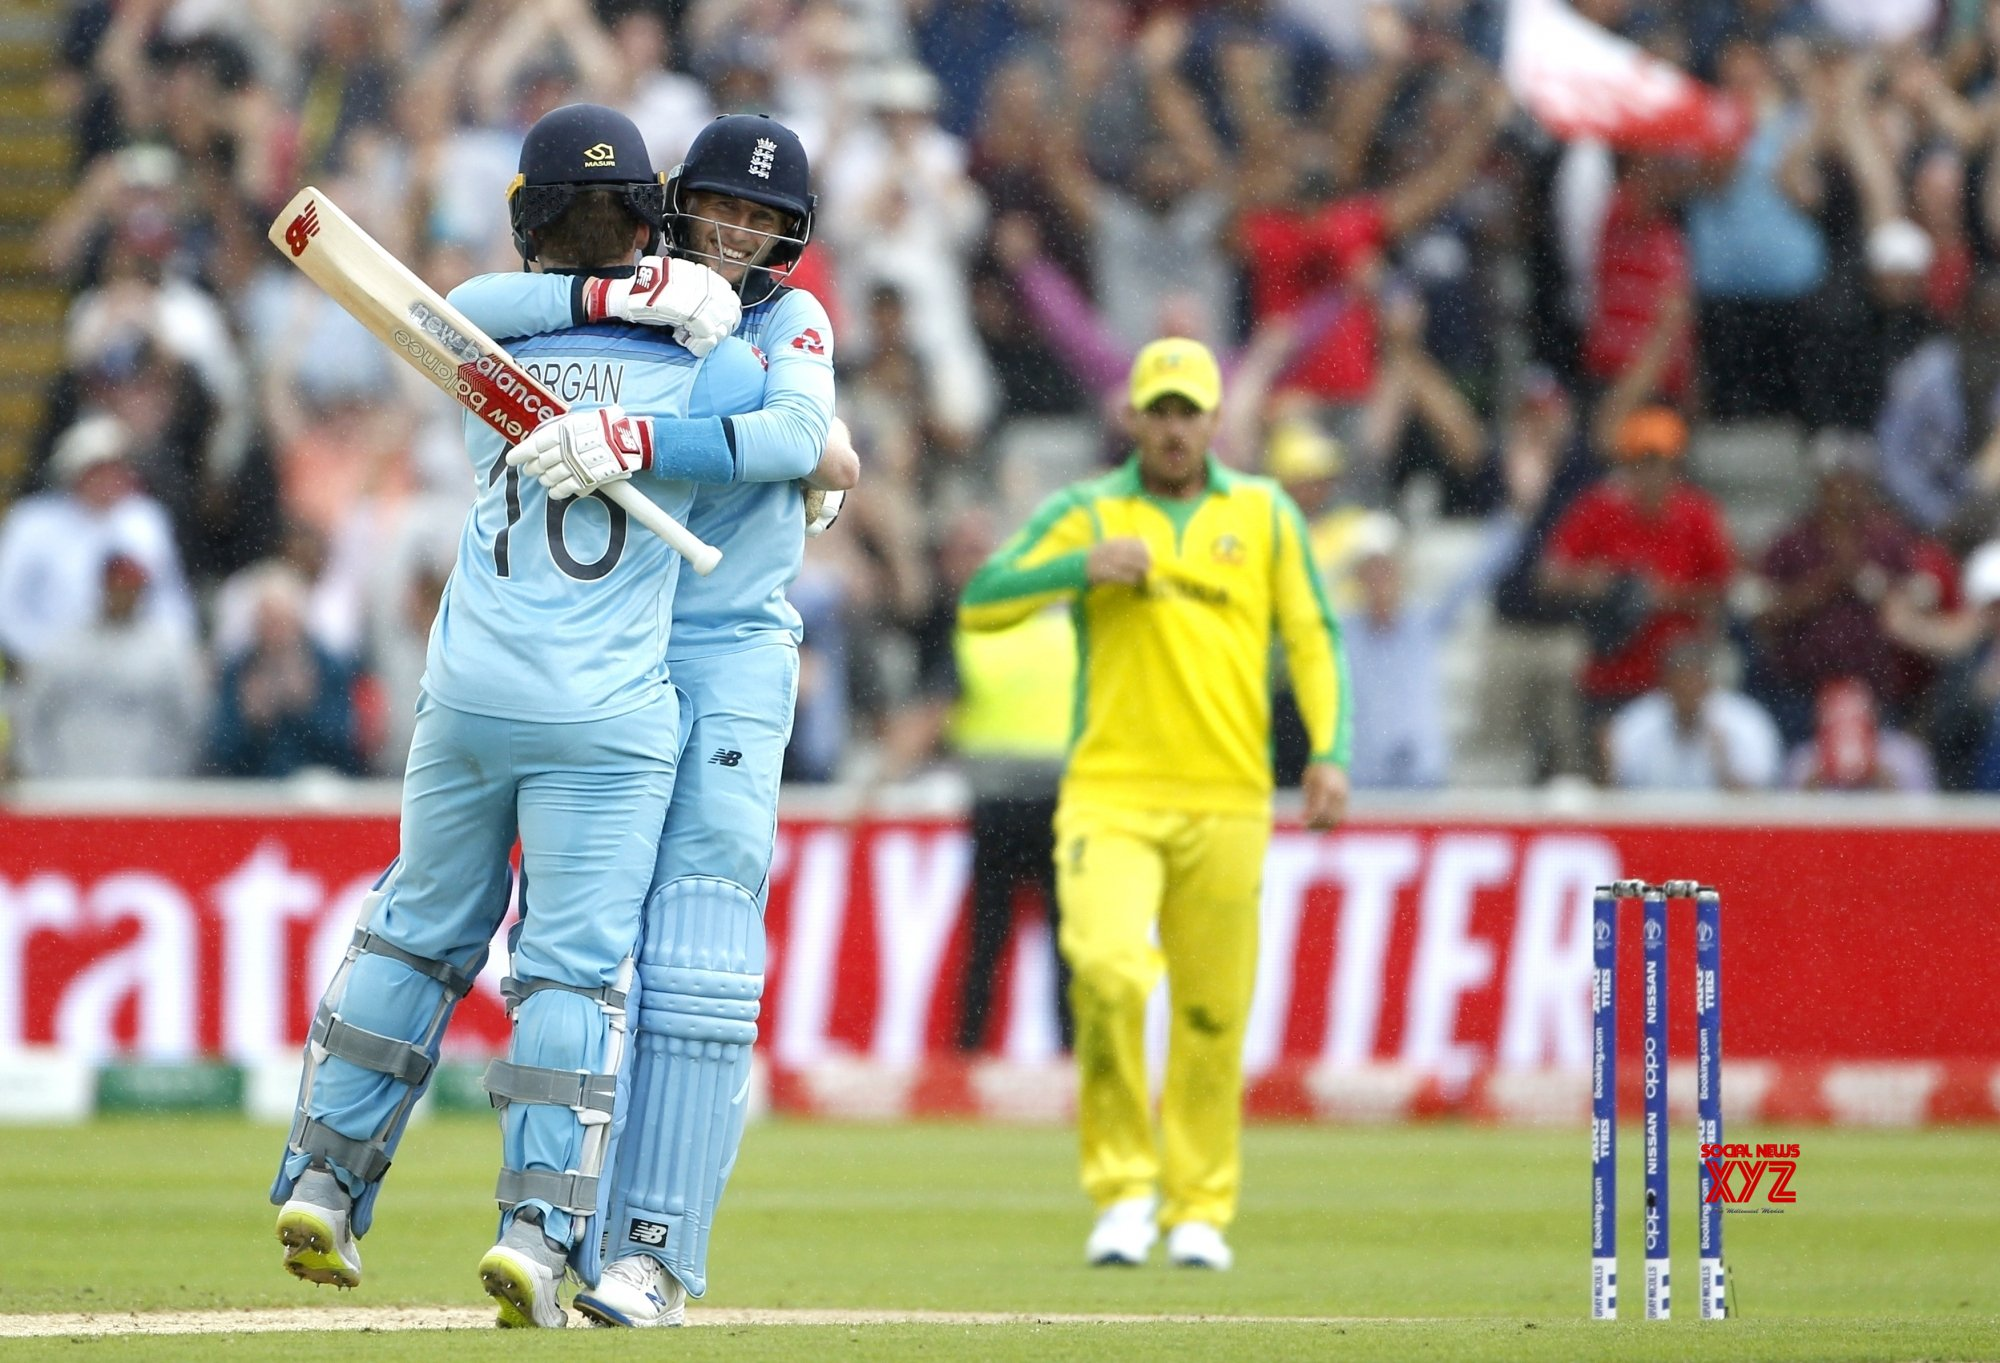 Birmingham (England): 2019 World Cup - 2nd Semi - final - Australia Vs England (Batch - 44) #Gallery